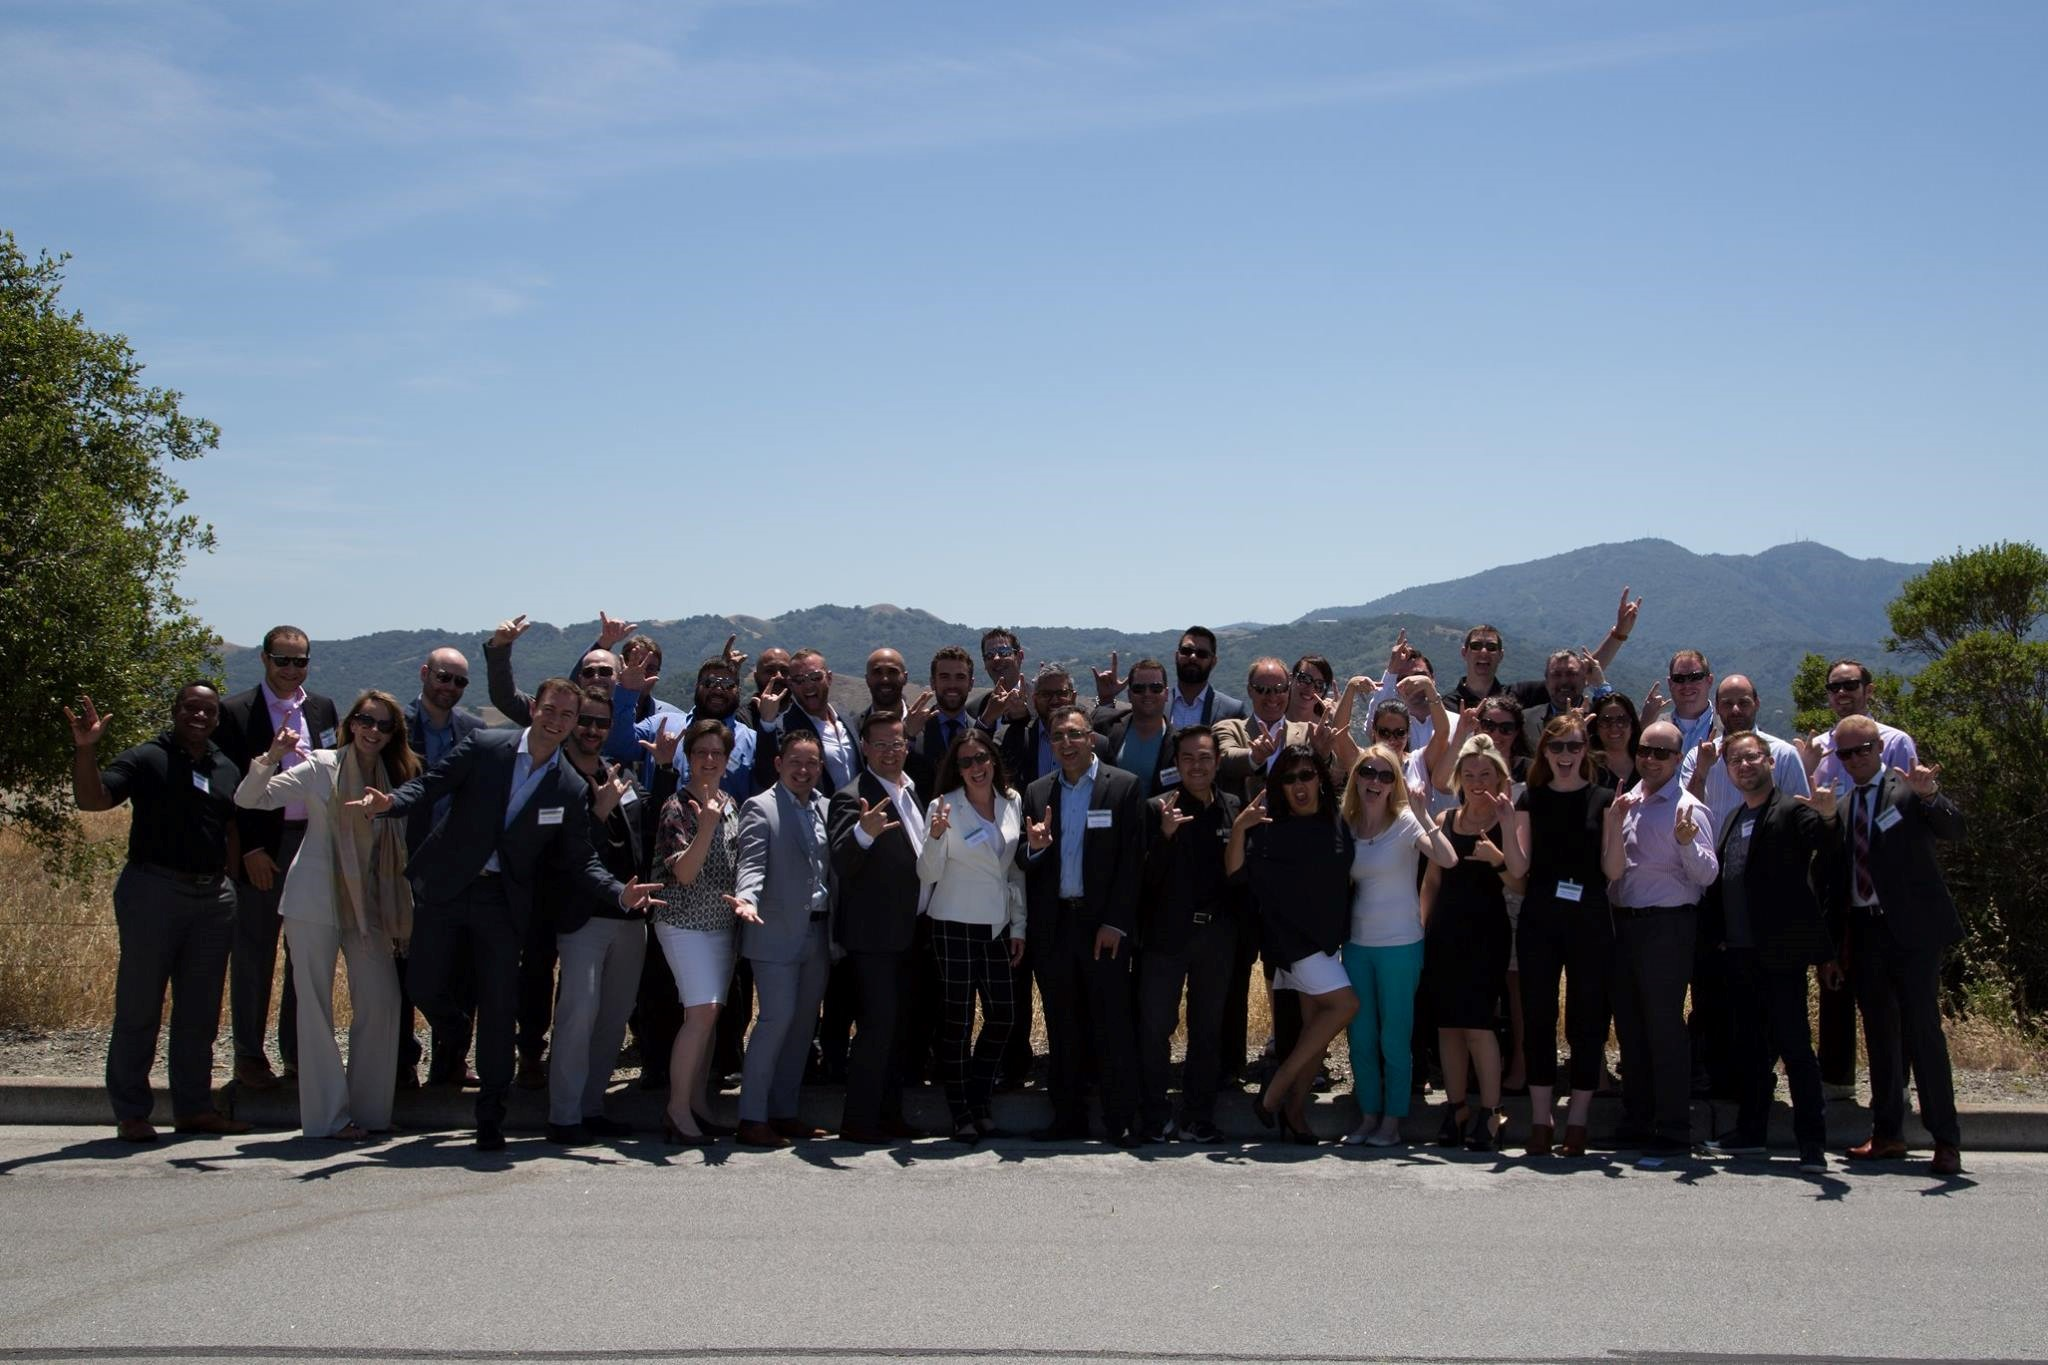 University of Ottawa's Telfer School of Management Executive MBA annual class trip to the Silicon Valley